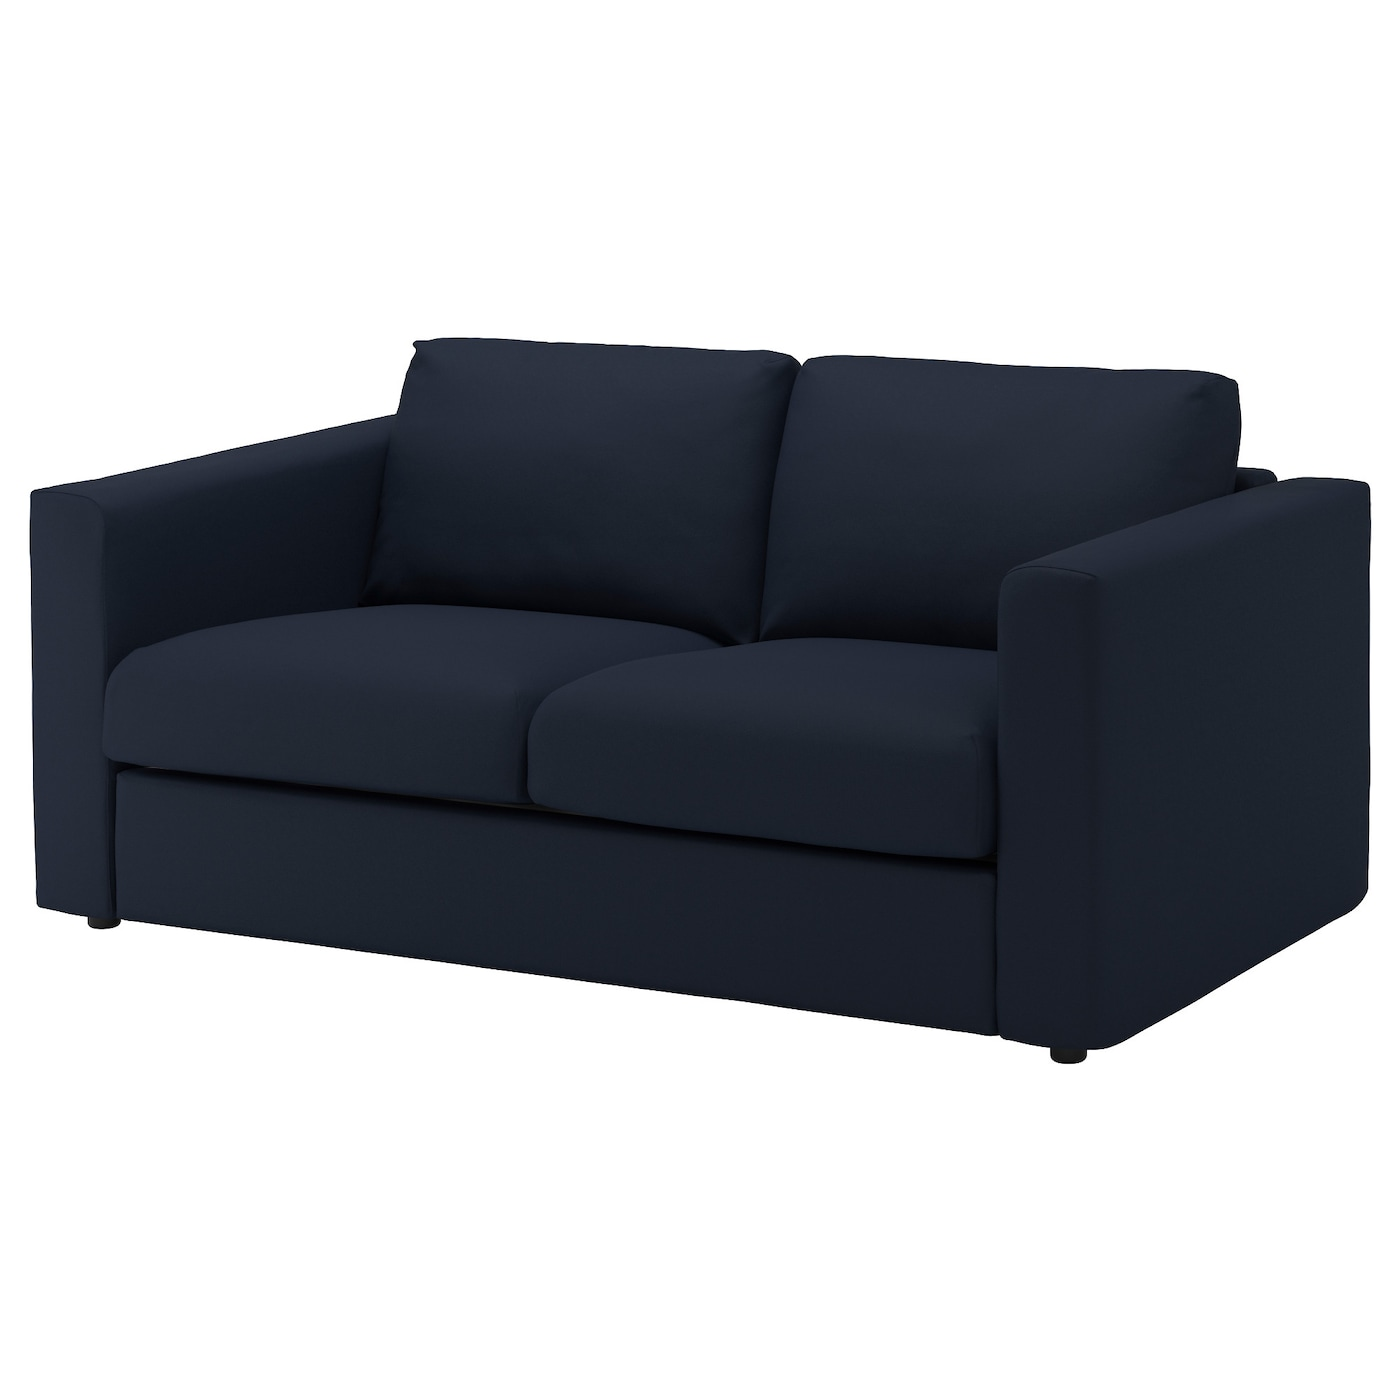 ikea sofa 2 seater slipcover for ikea klippan 2 seater sofa cover throw loveseat thesofa. Black Bedroom Furniture Sets. Home Design Ideas